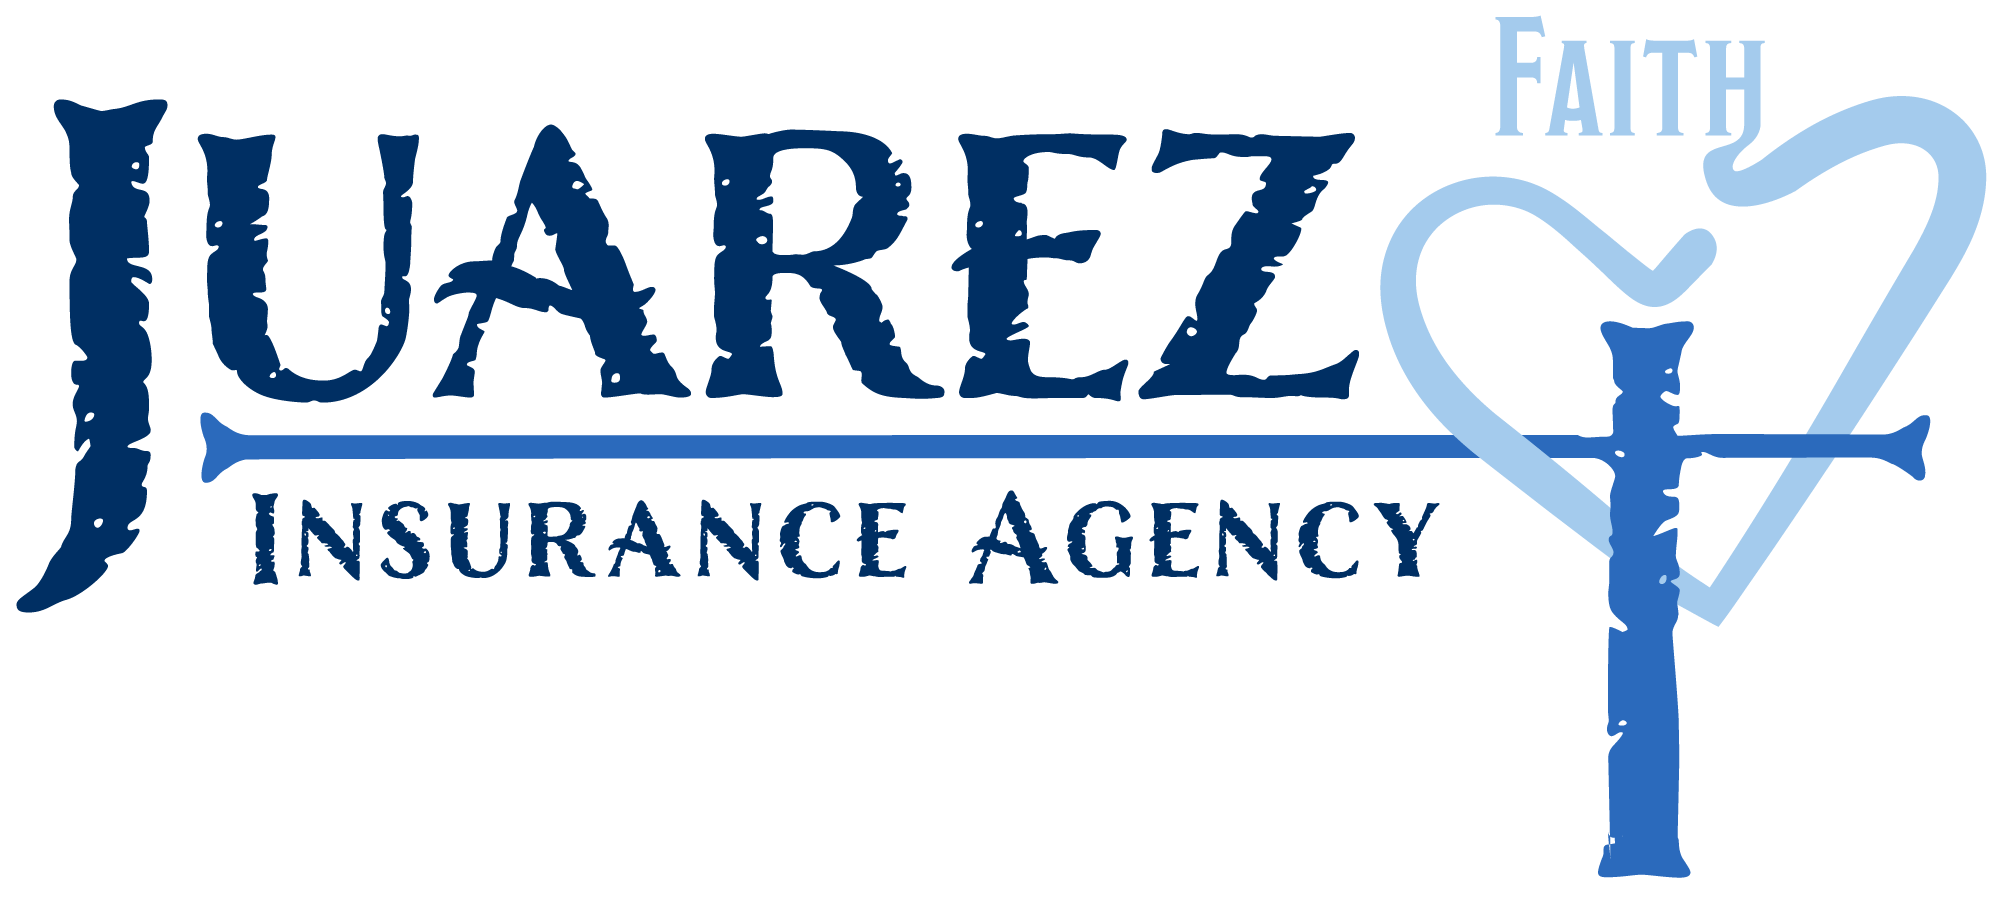 Juarez Insurance Agency Logo